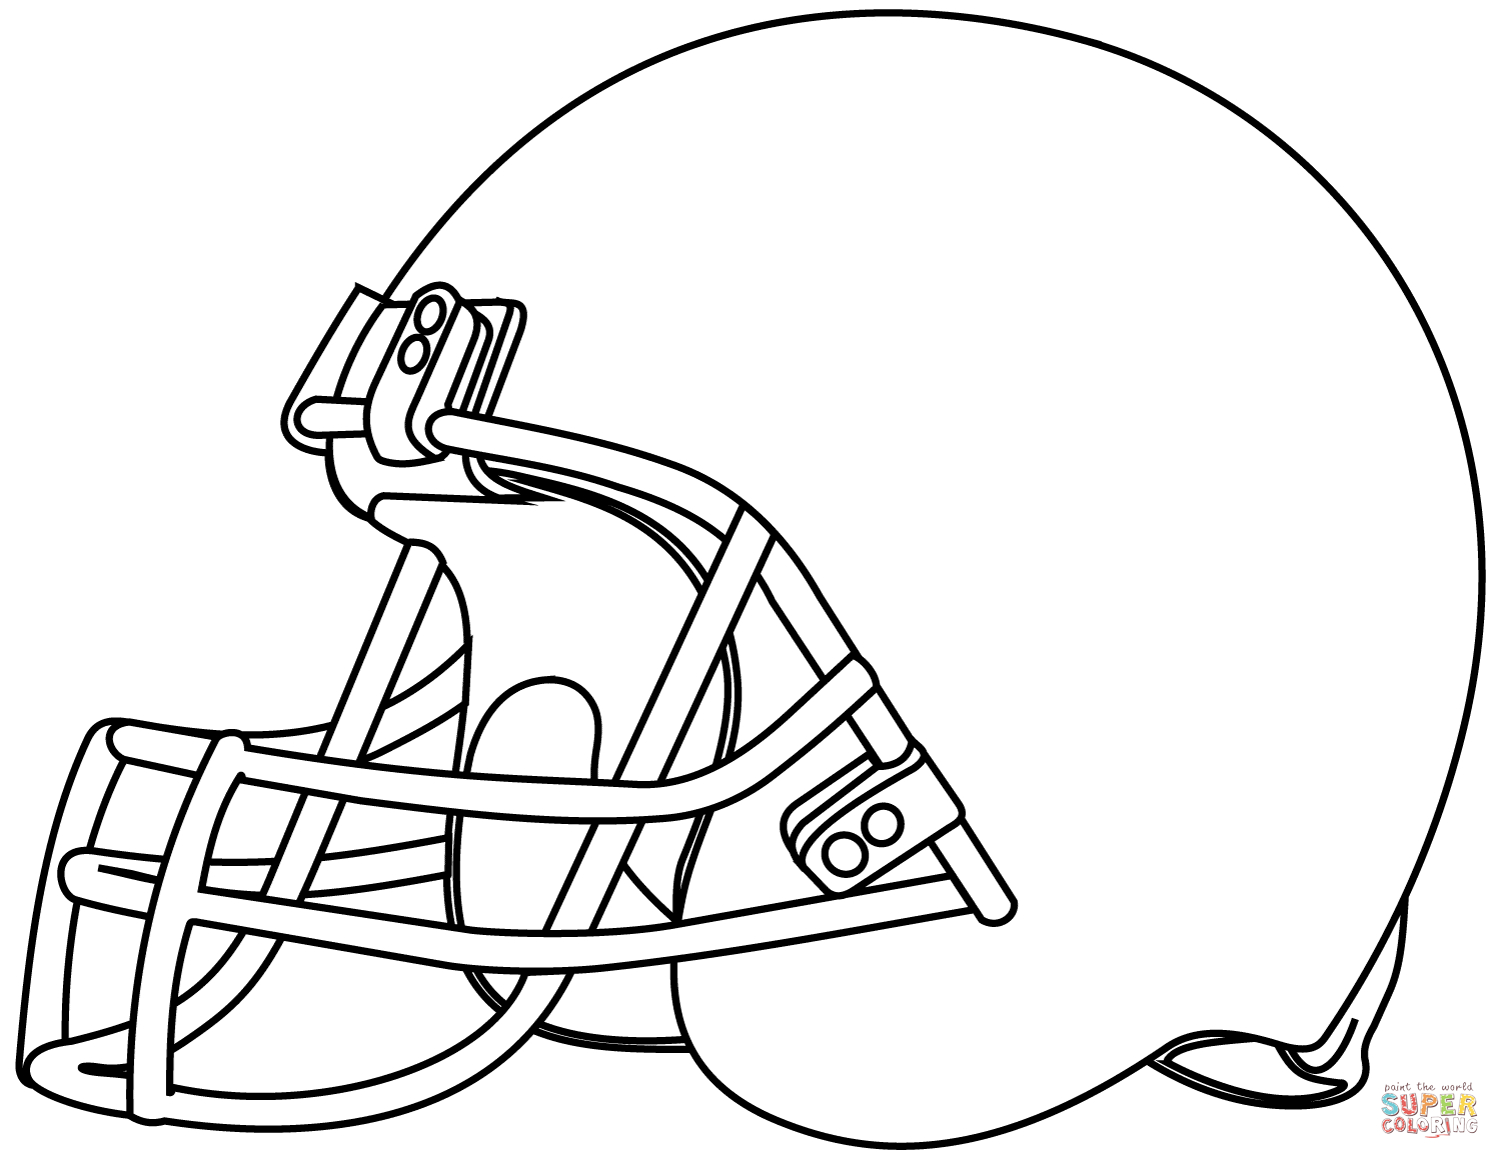 25+ Creative Picture of Football Helmet Coloring Page